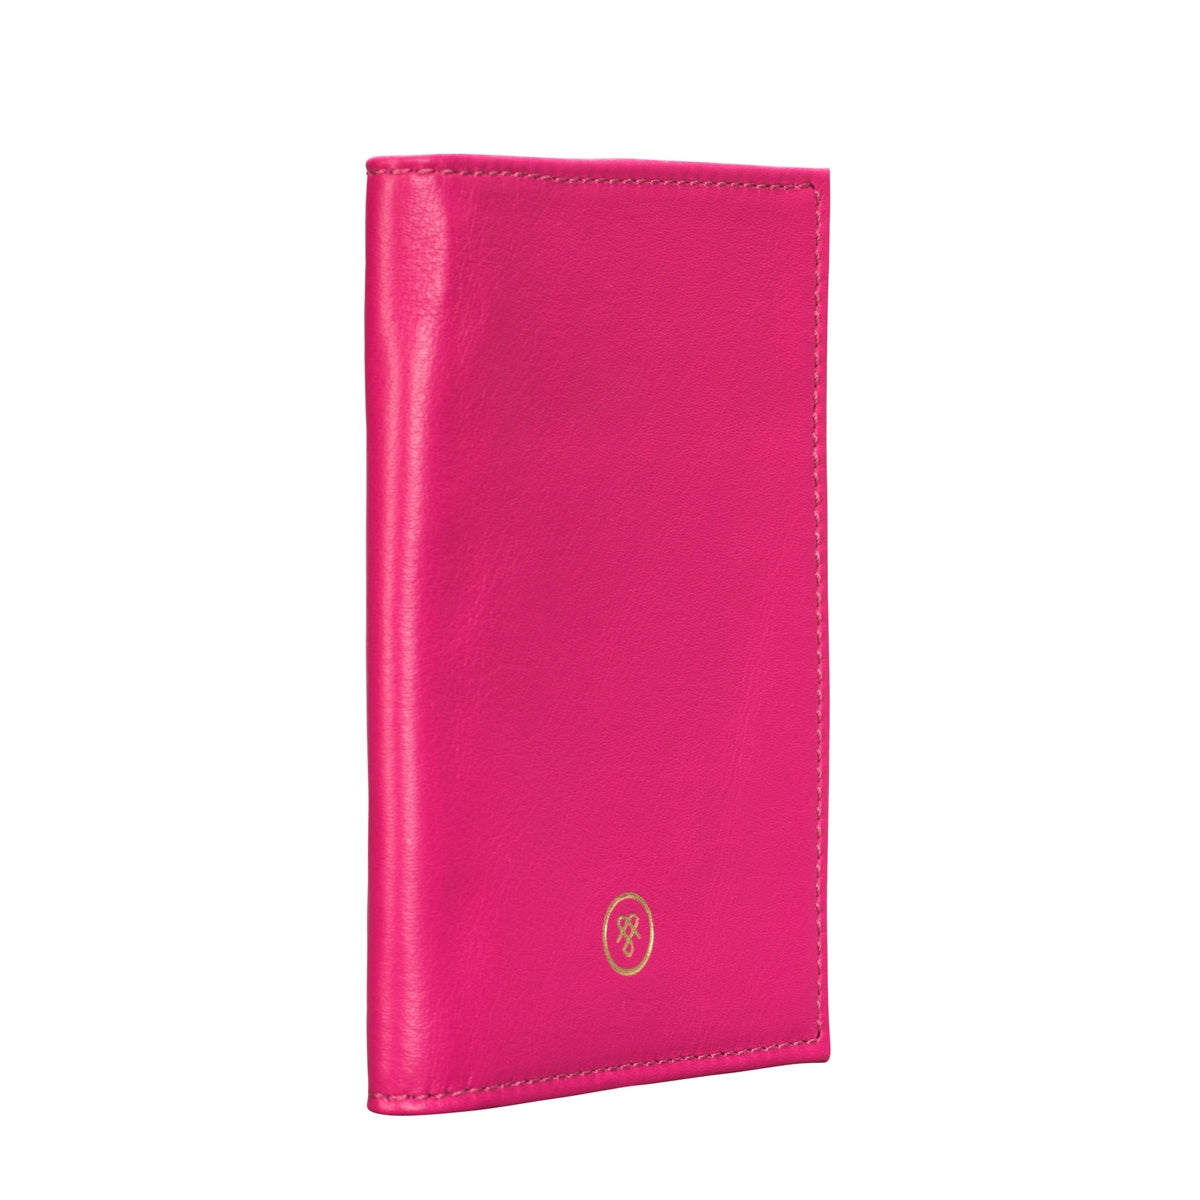 Image 2 of the 'Prato' Luxury Leather Passport Holder